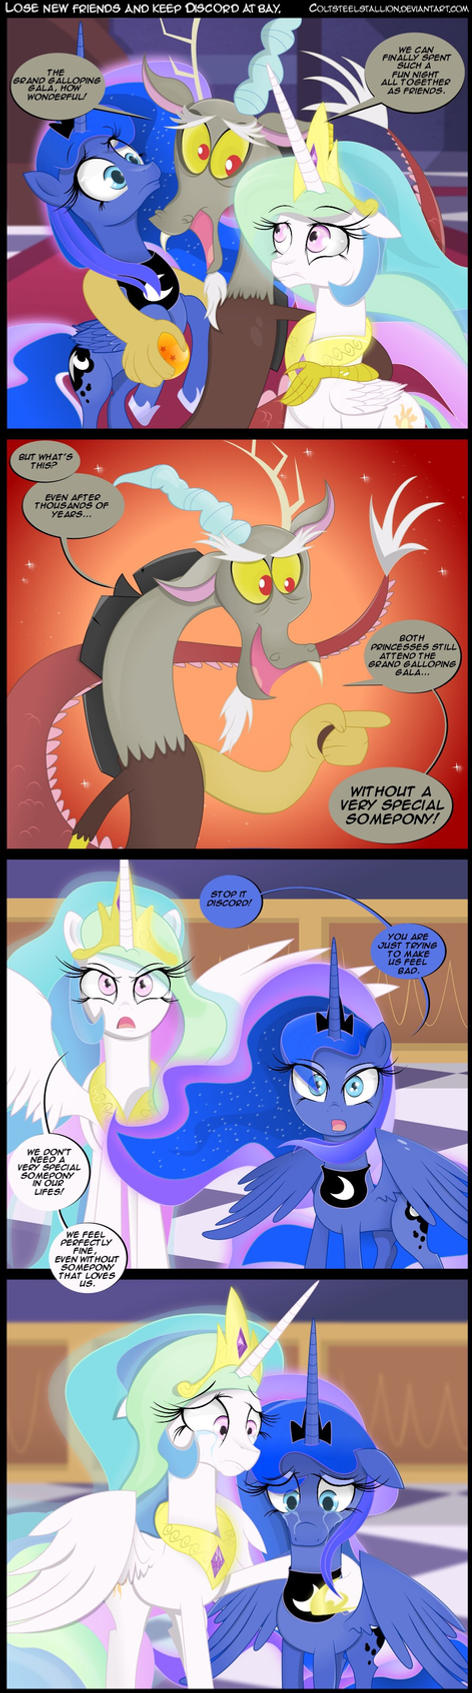 Lose new friends and keep discord at bay. by Coltsteelstallion